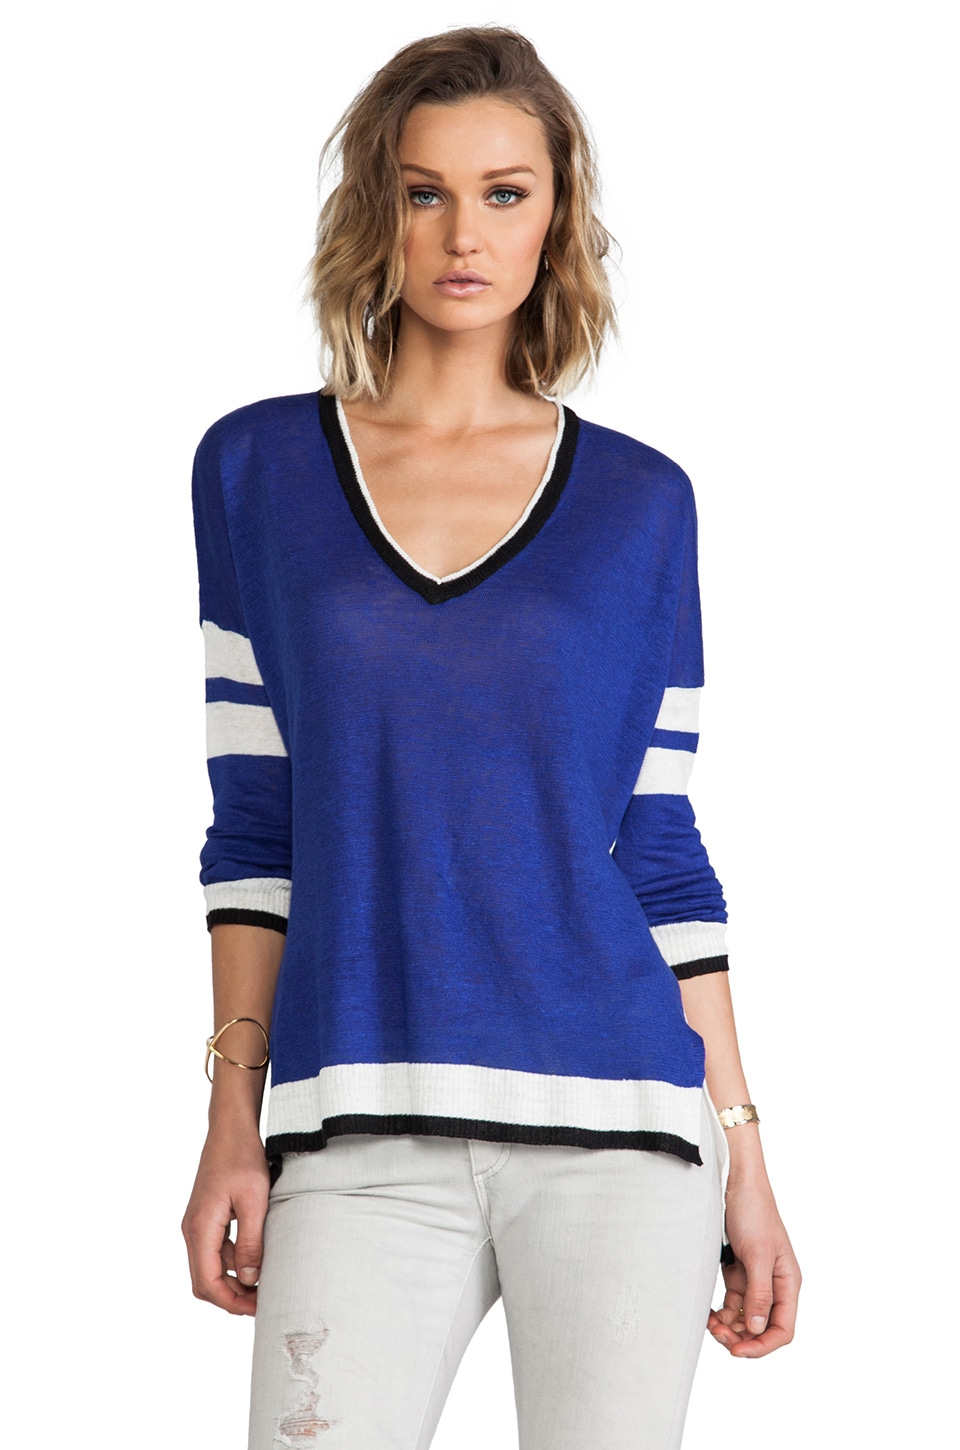 Central Park West Zanzibar Color Block Sweater in Royal Navy Multi